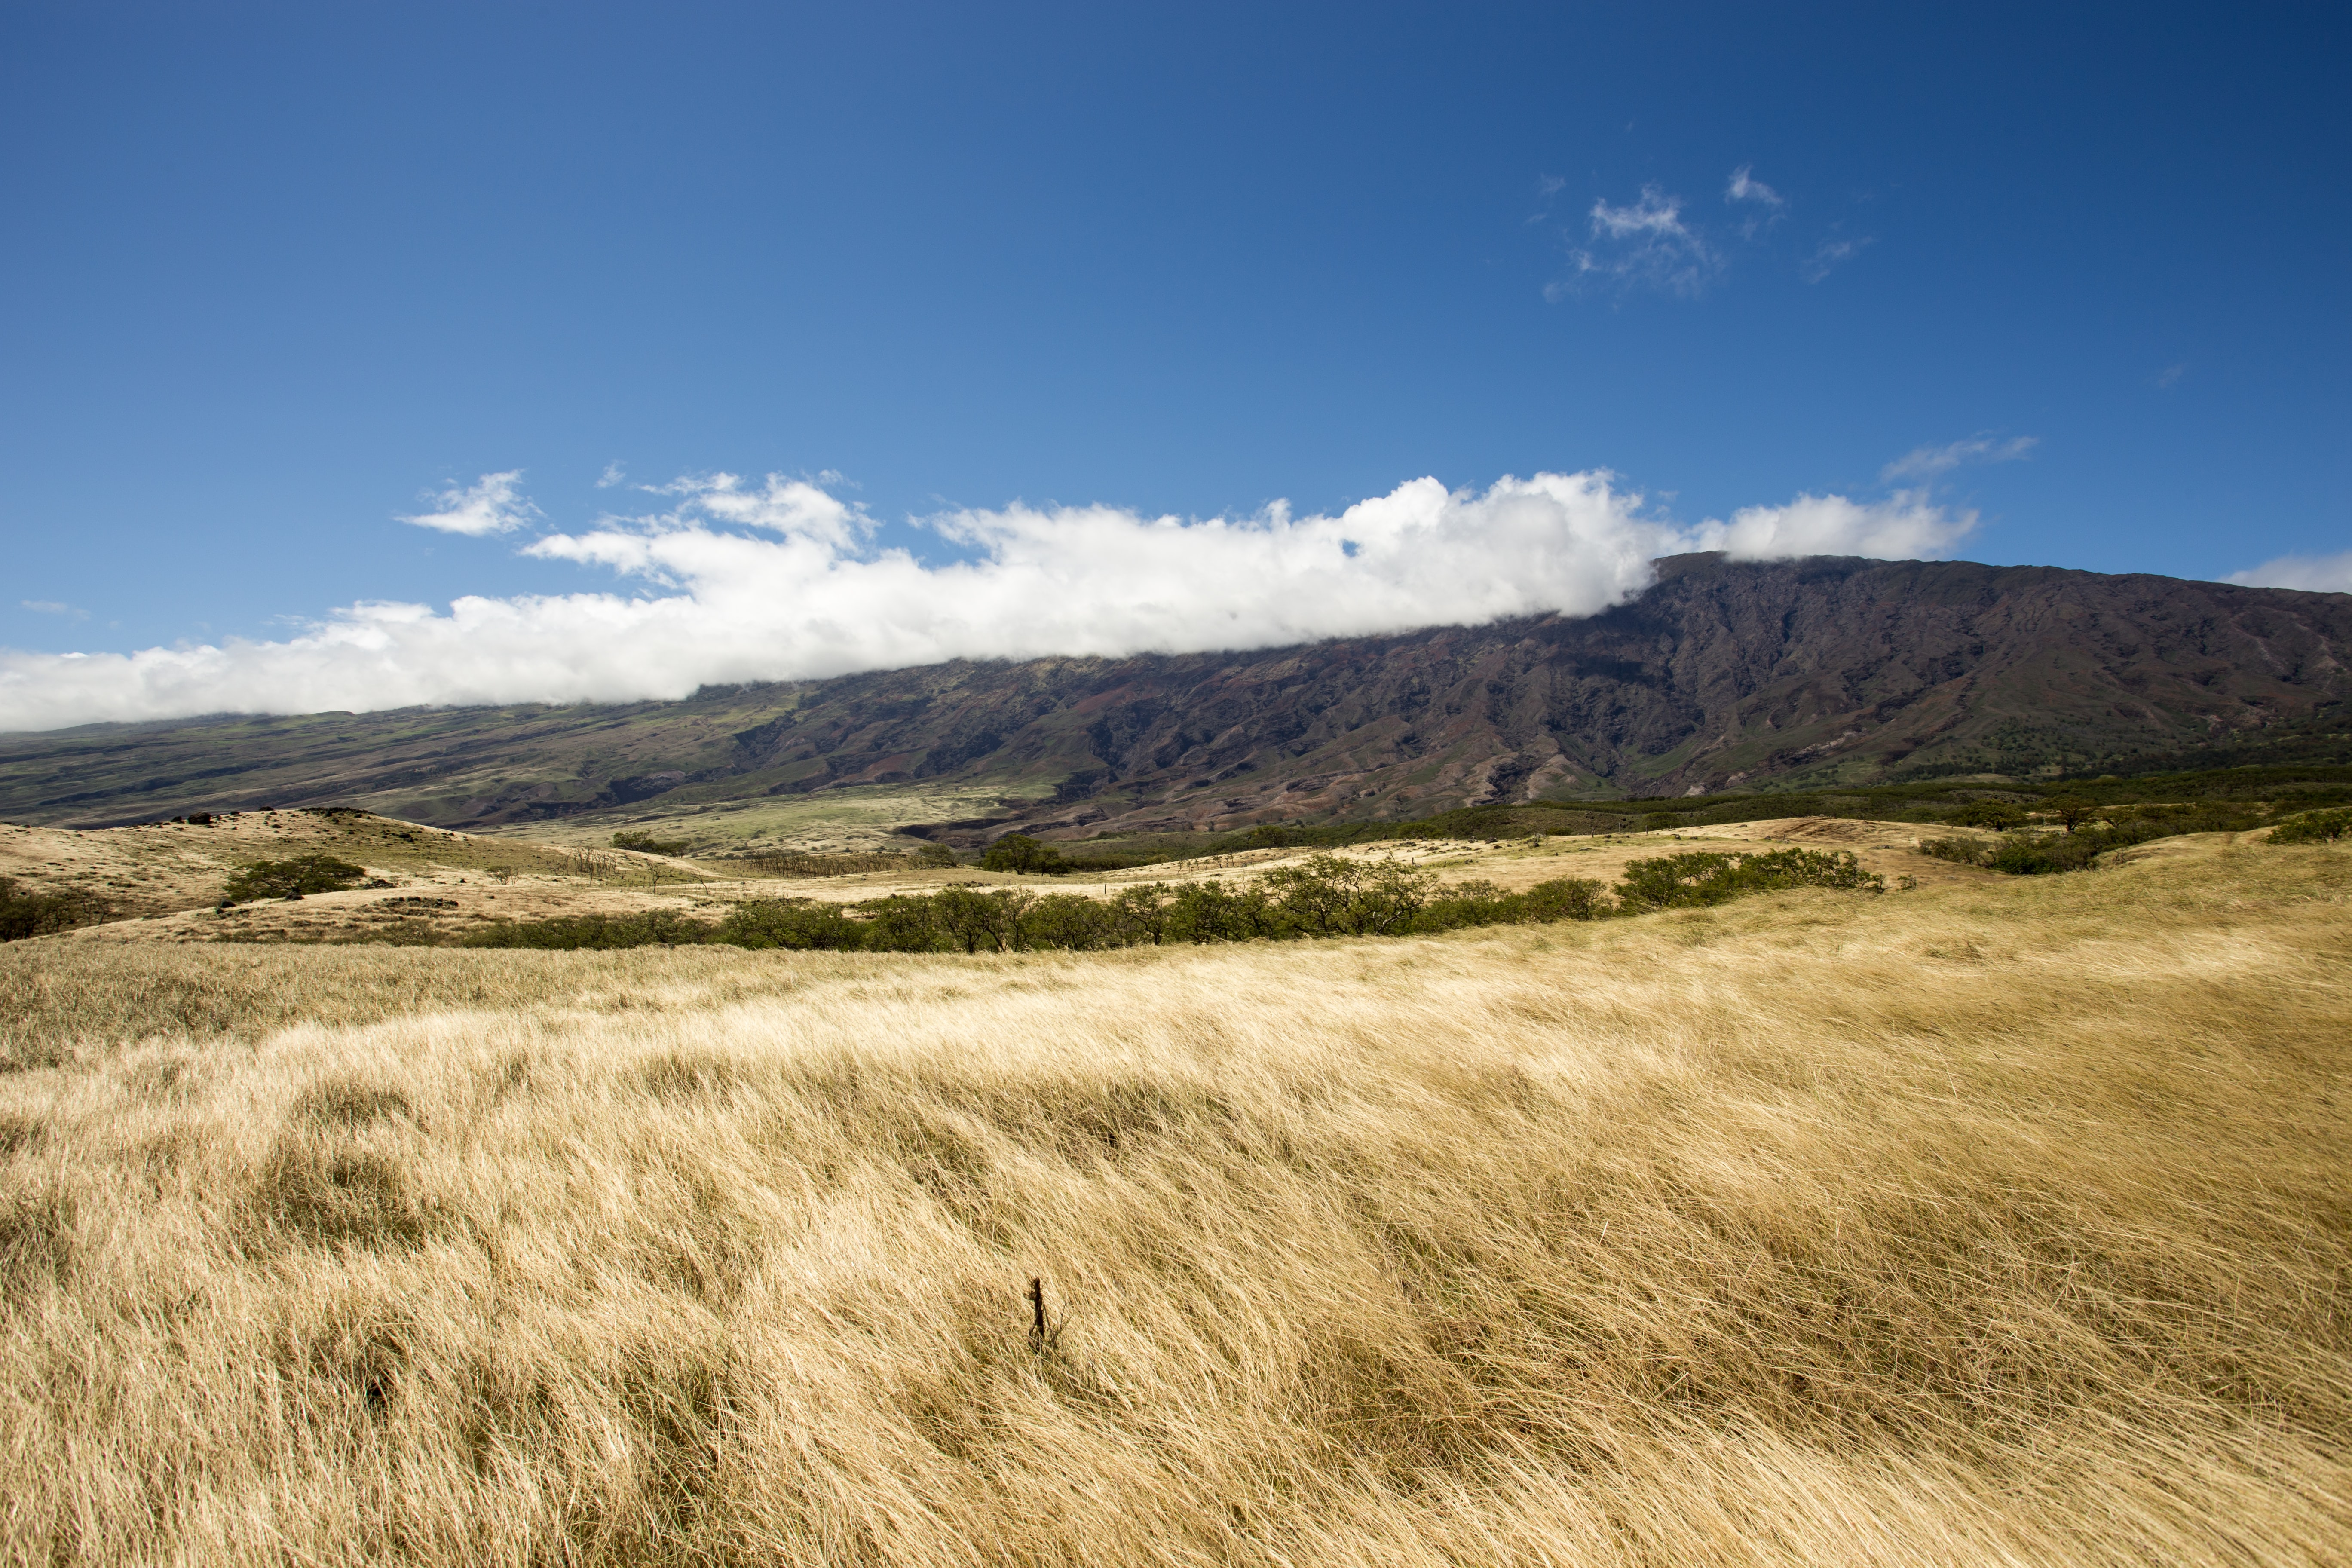 A field of dry grass at the food of a long mountain range